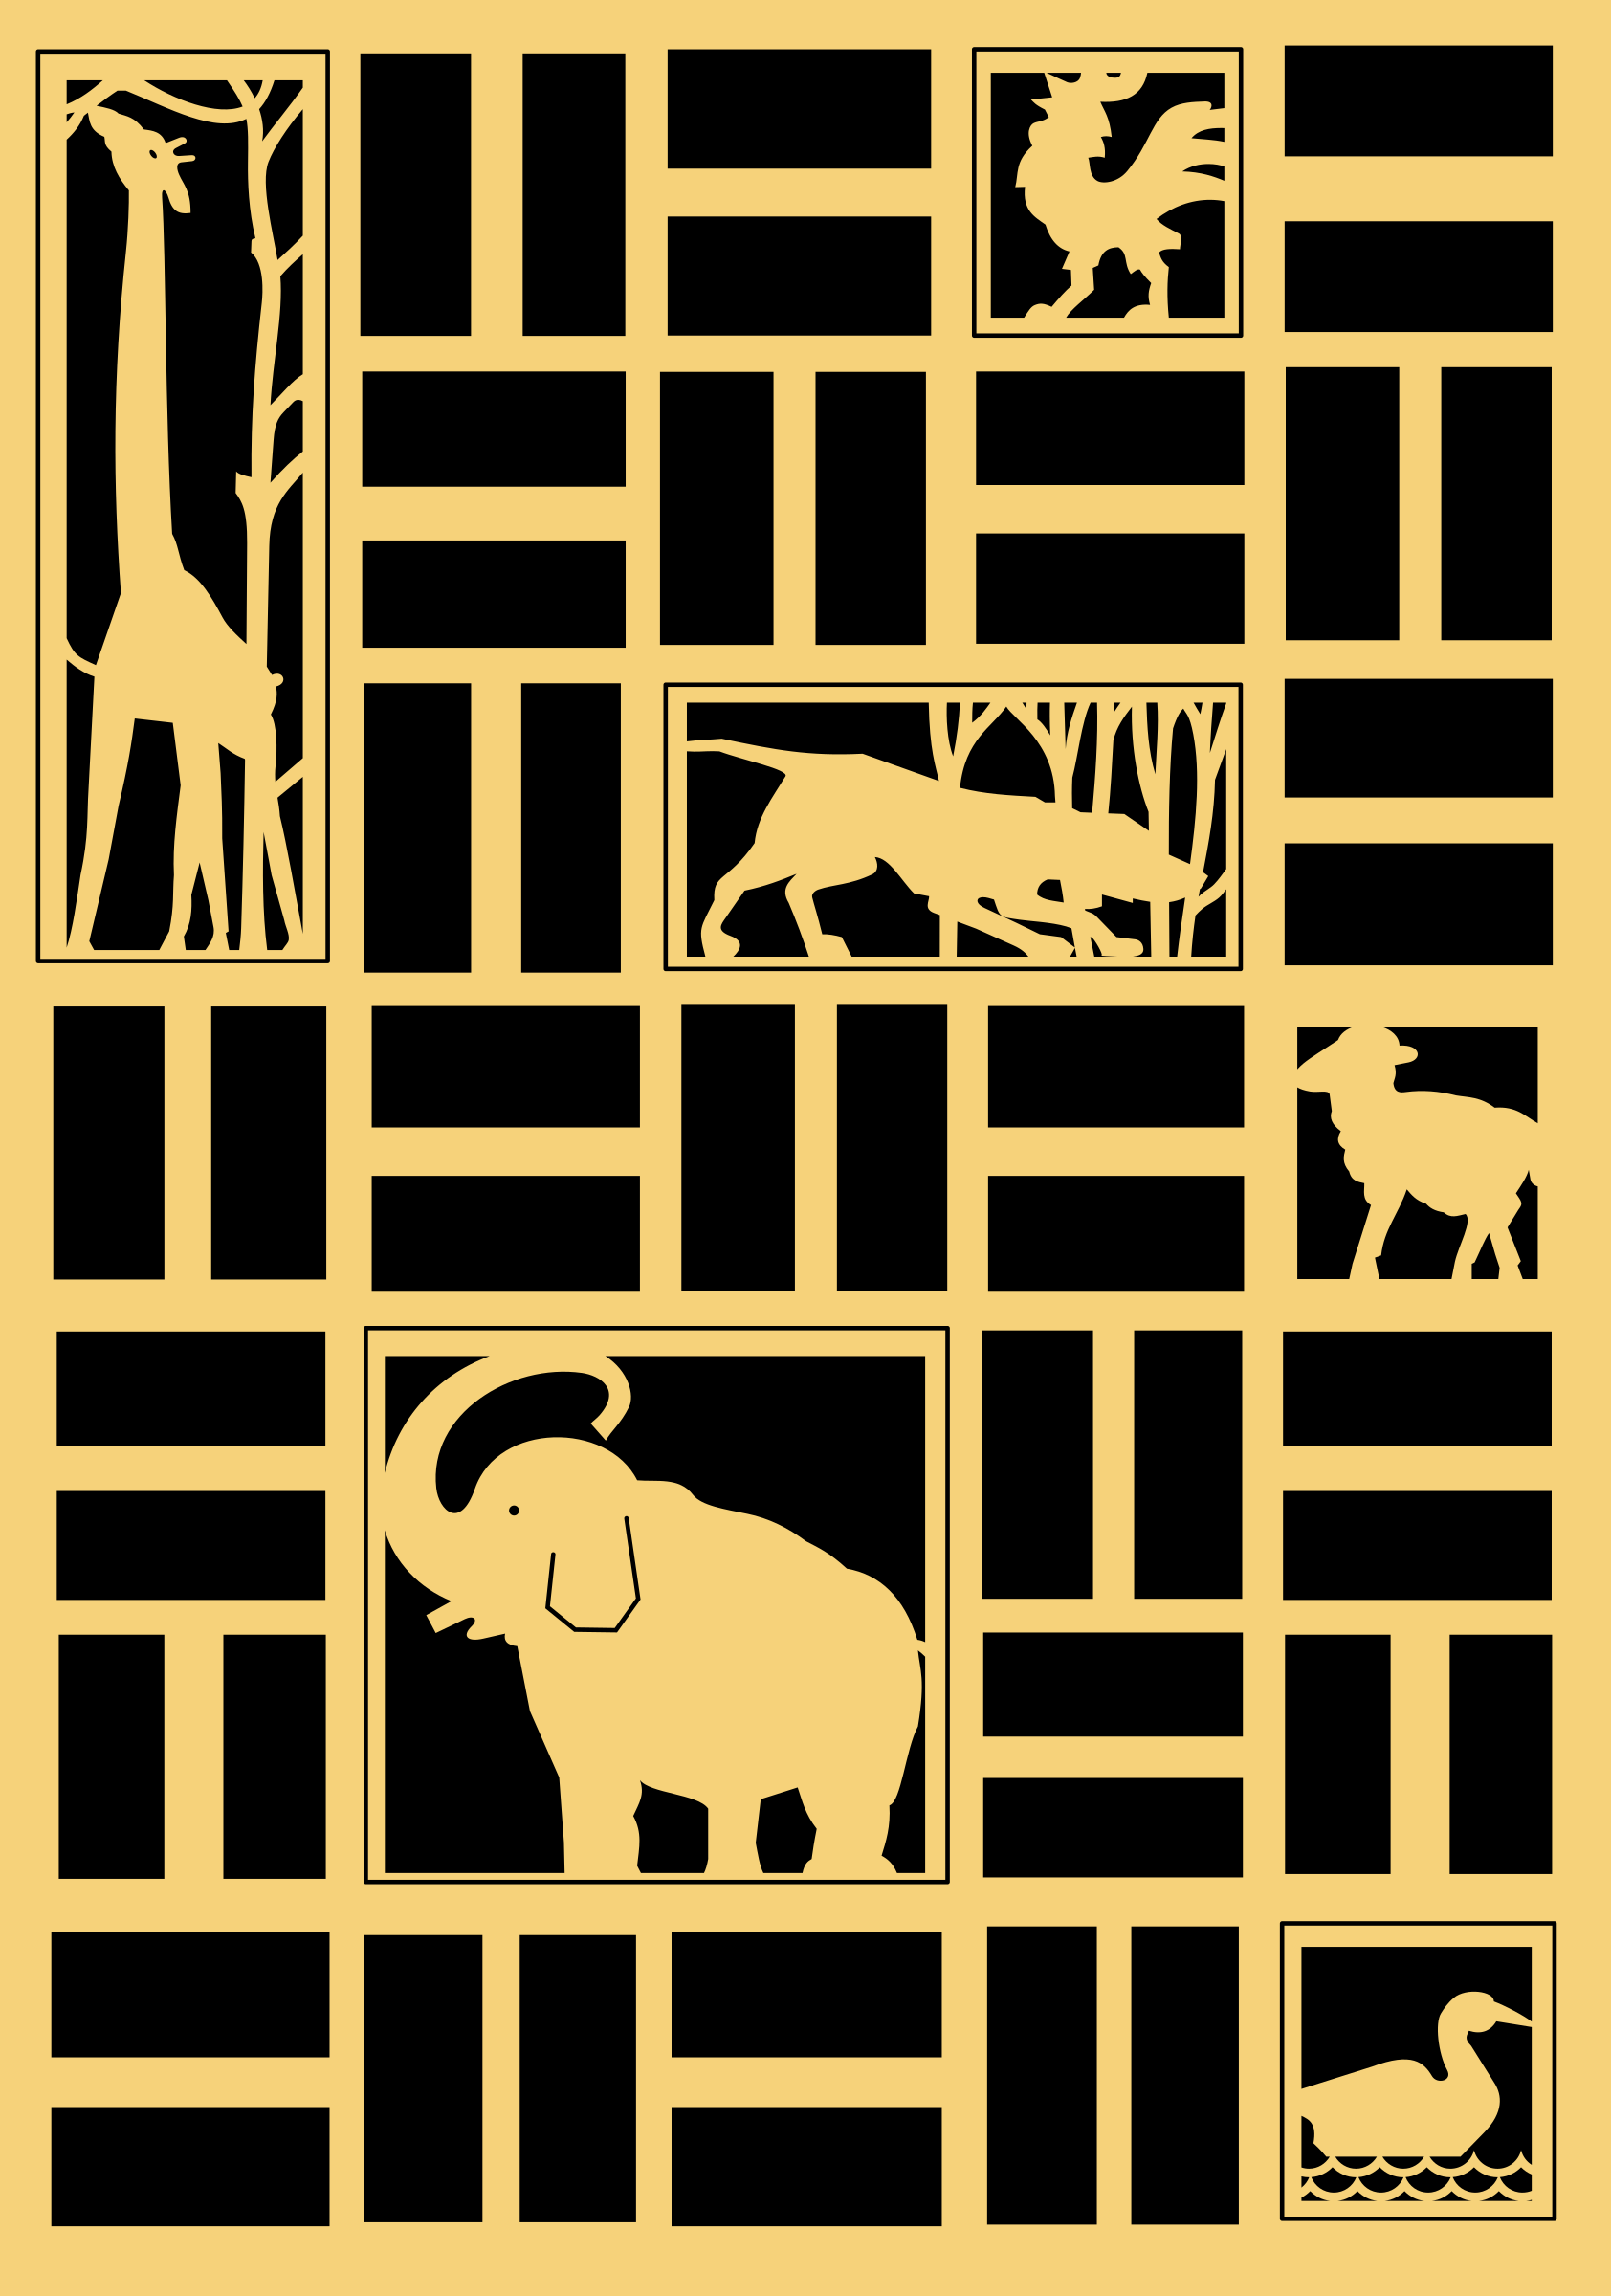 Animals panel by rones